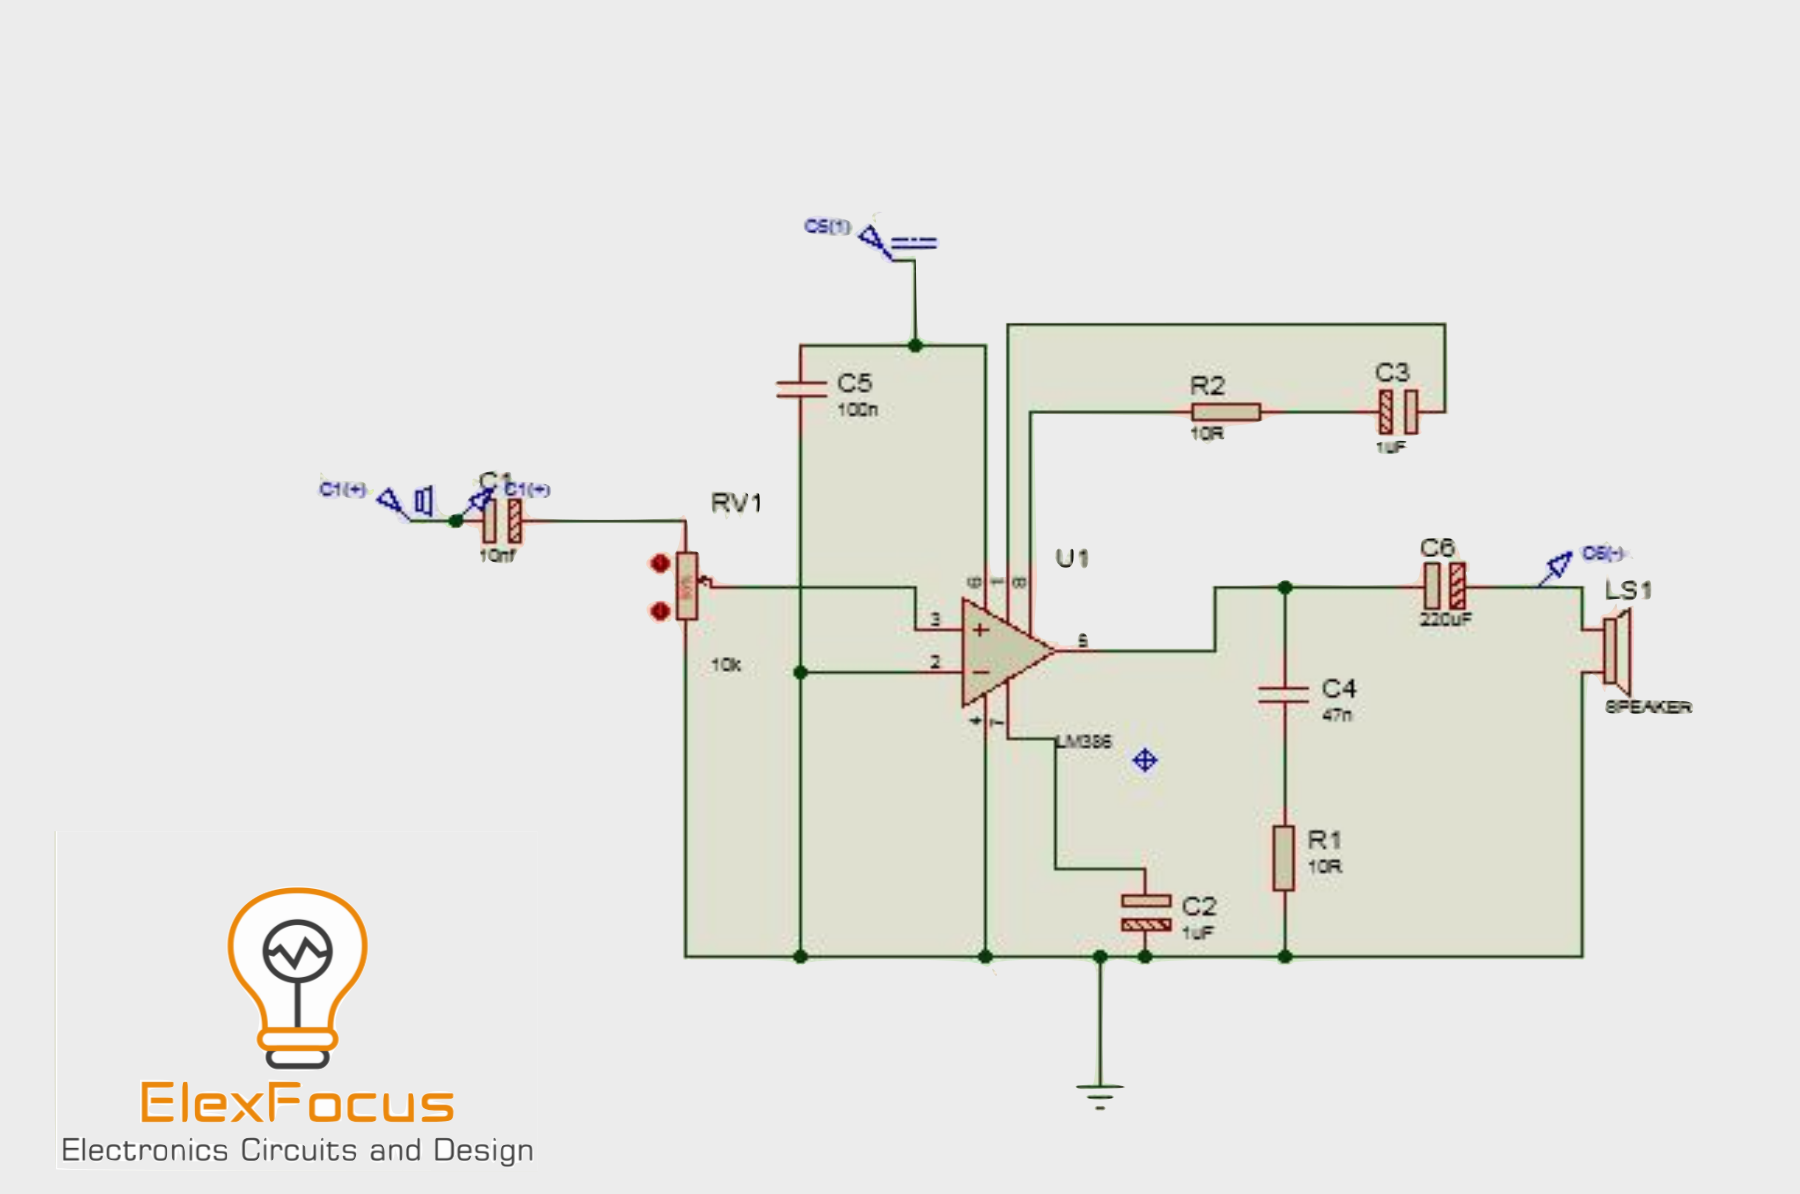 Lm386 Audio Amplifier Circuit With Proteus Simulation Elex Focus Stepper Motor Driver Diagram Using 555 Timer Ic